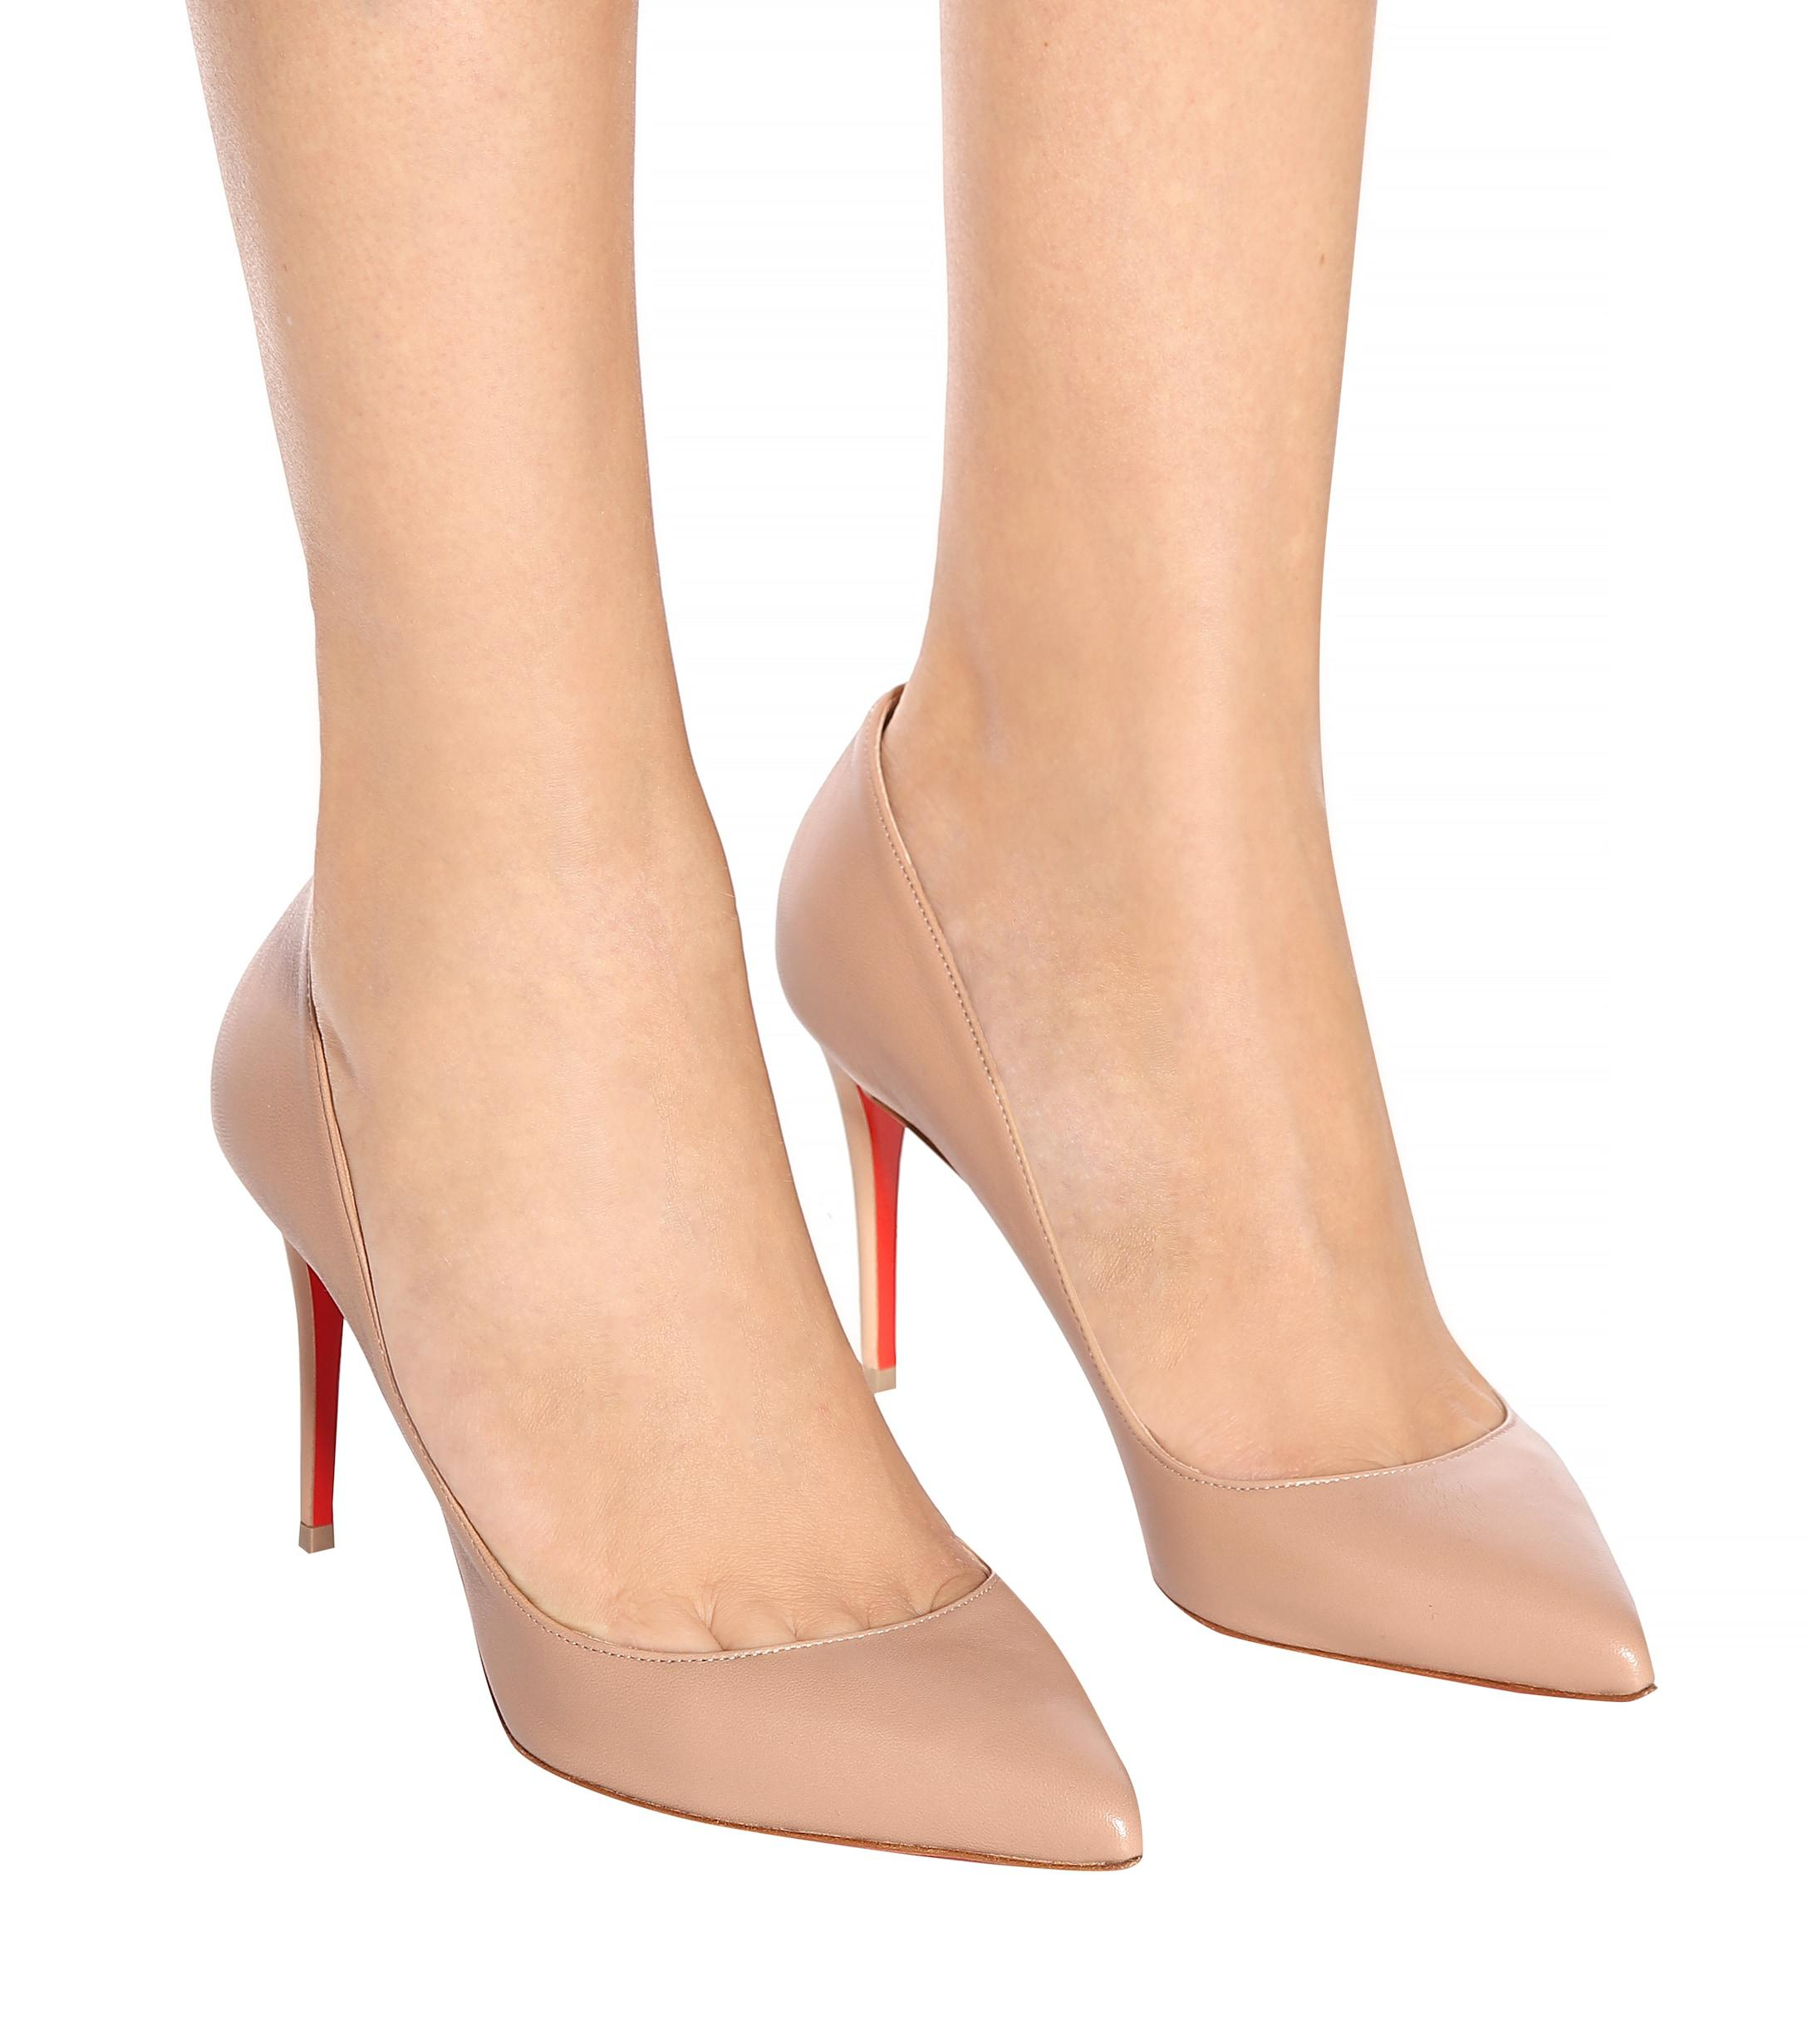 online store 616eb 5ddf3 Women's Natural Pigalle Follies 85 Leather Pumps